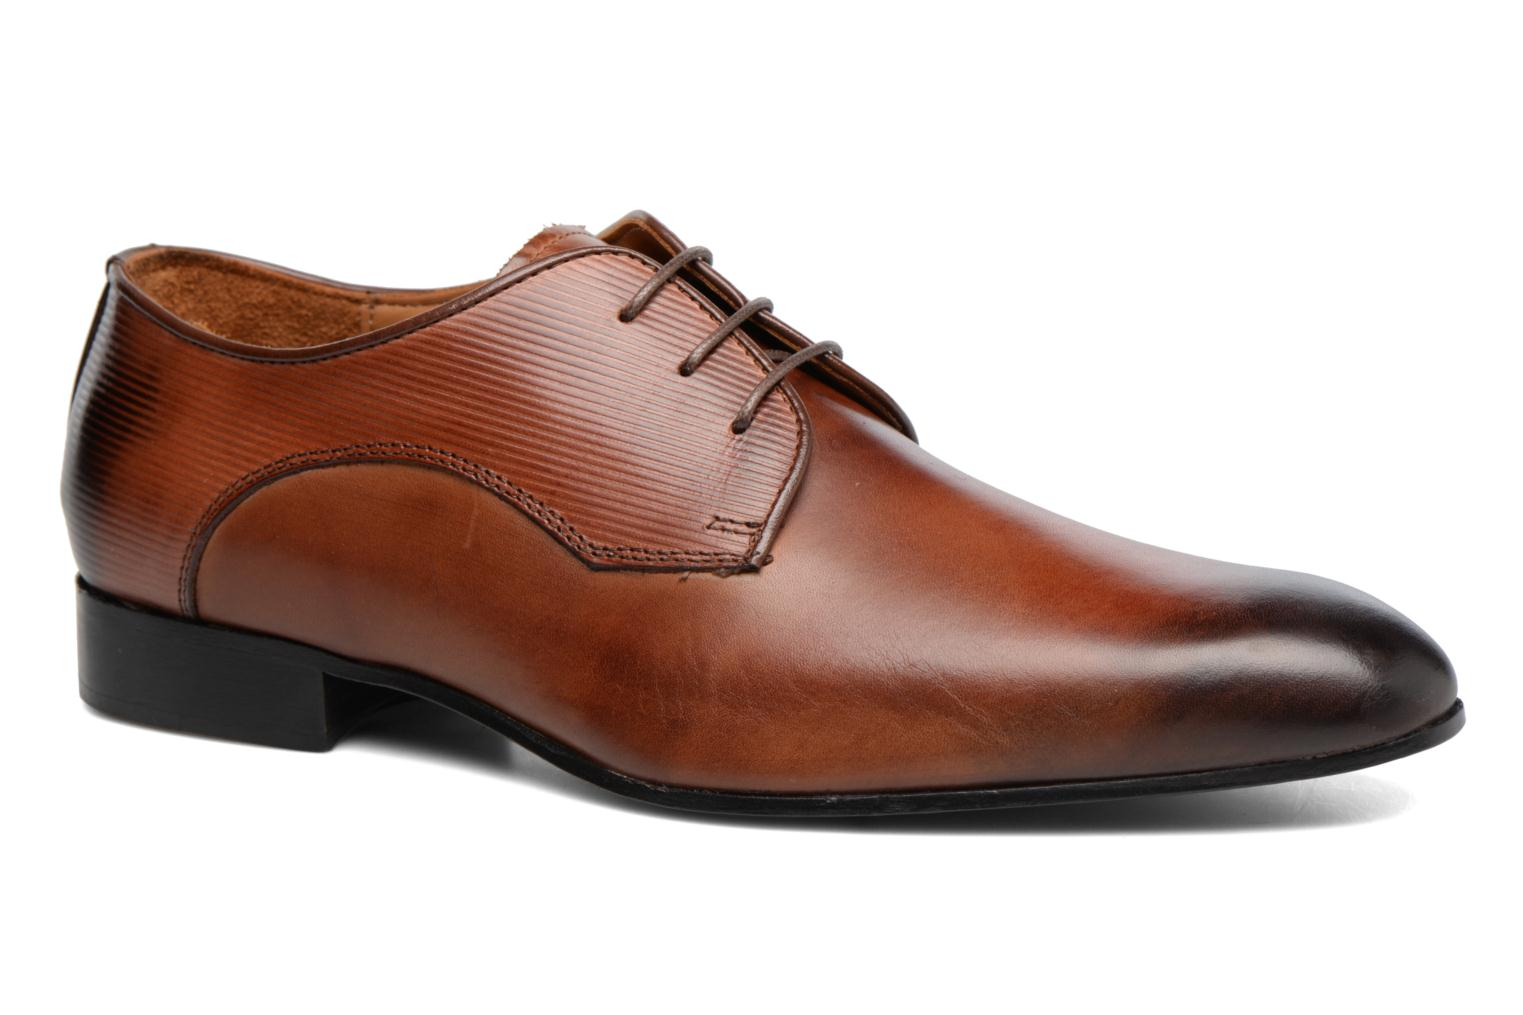 Marques Chaussure homme Marvin&Co homme Northam marron